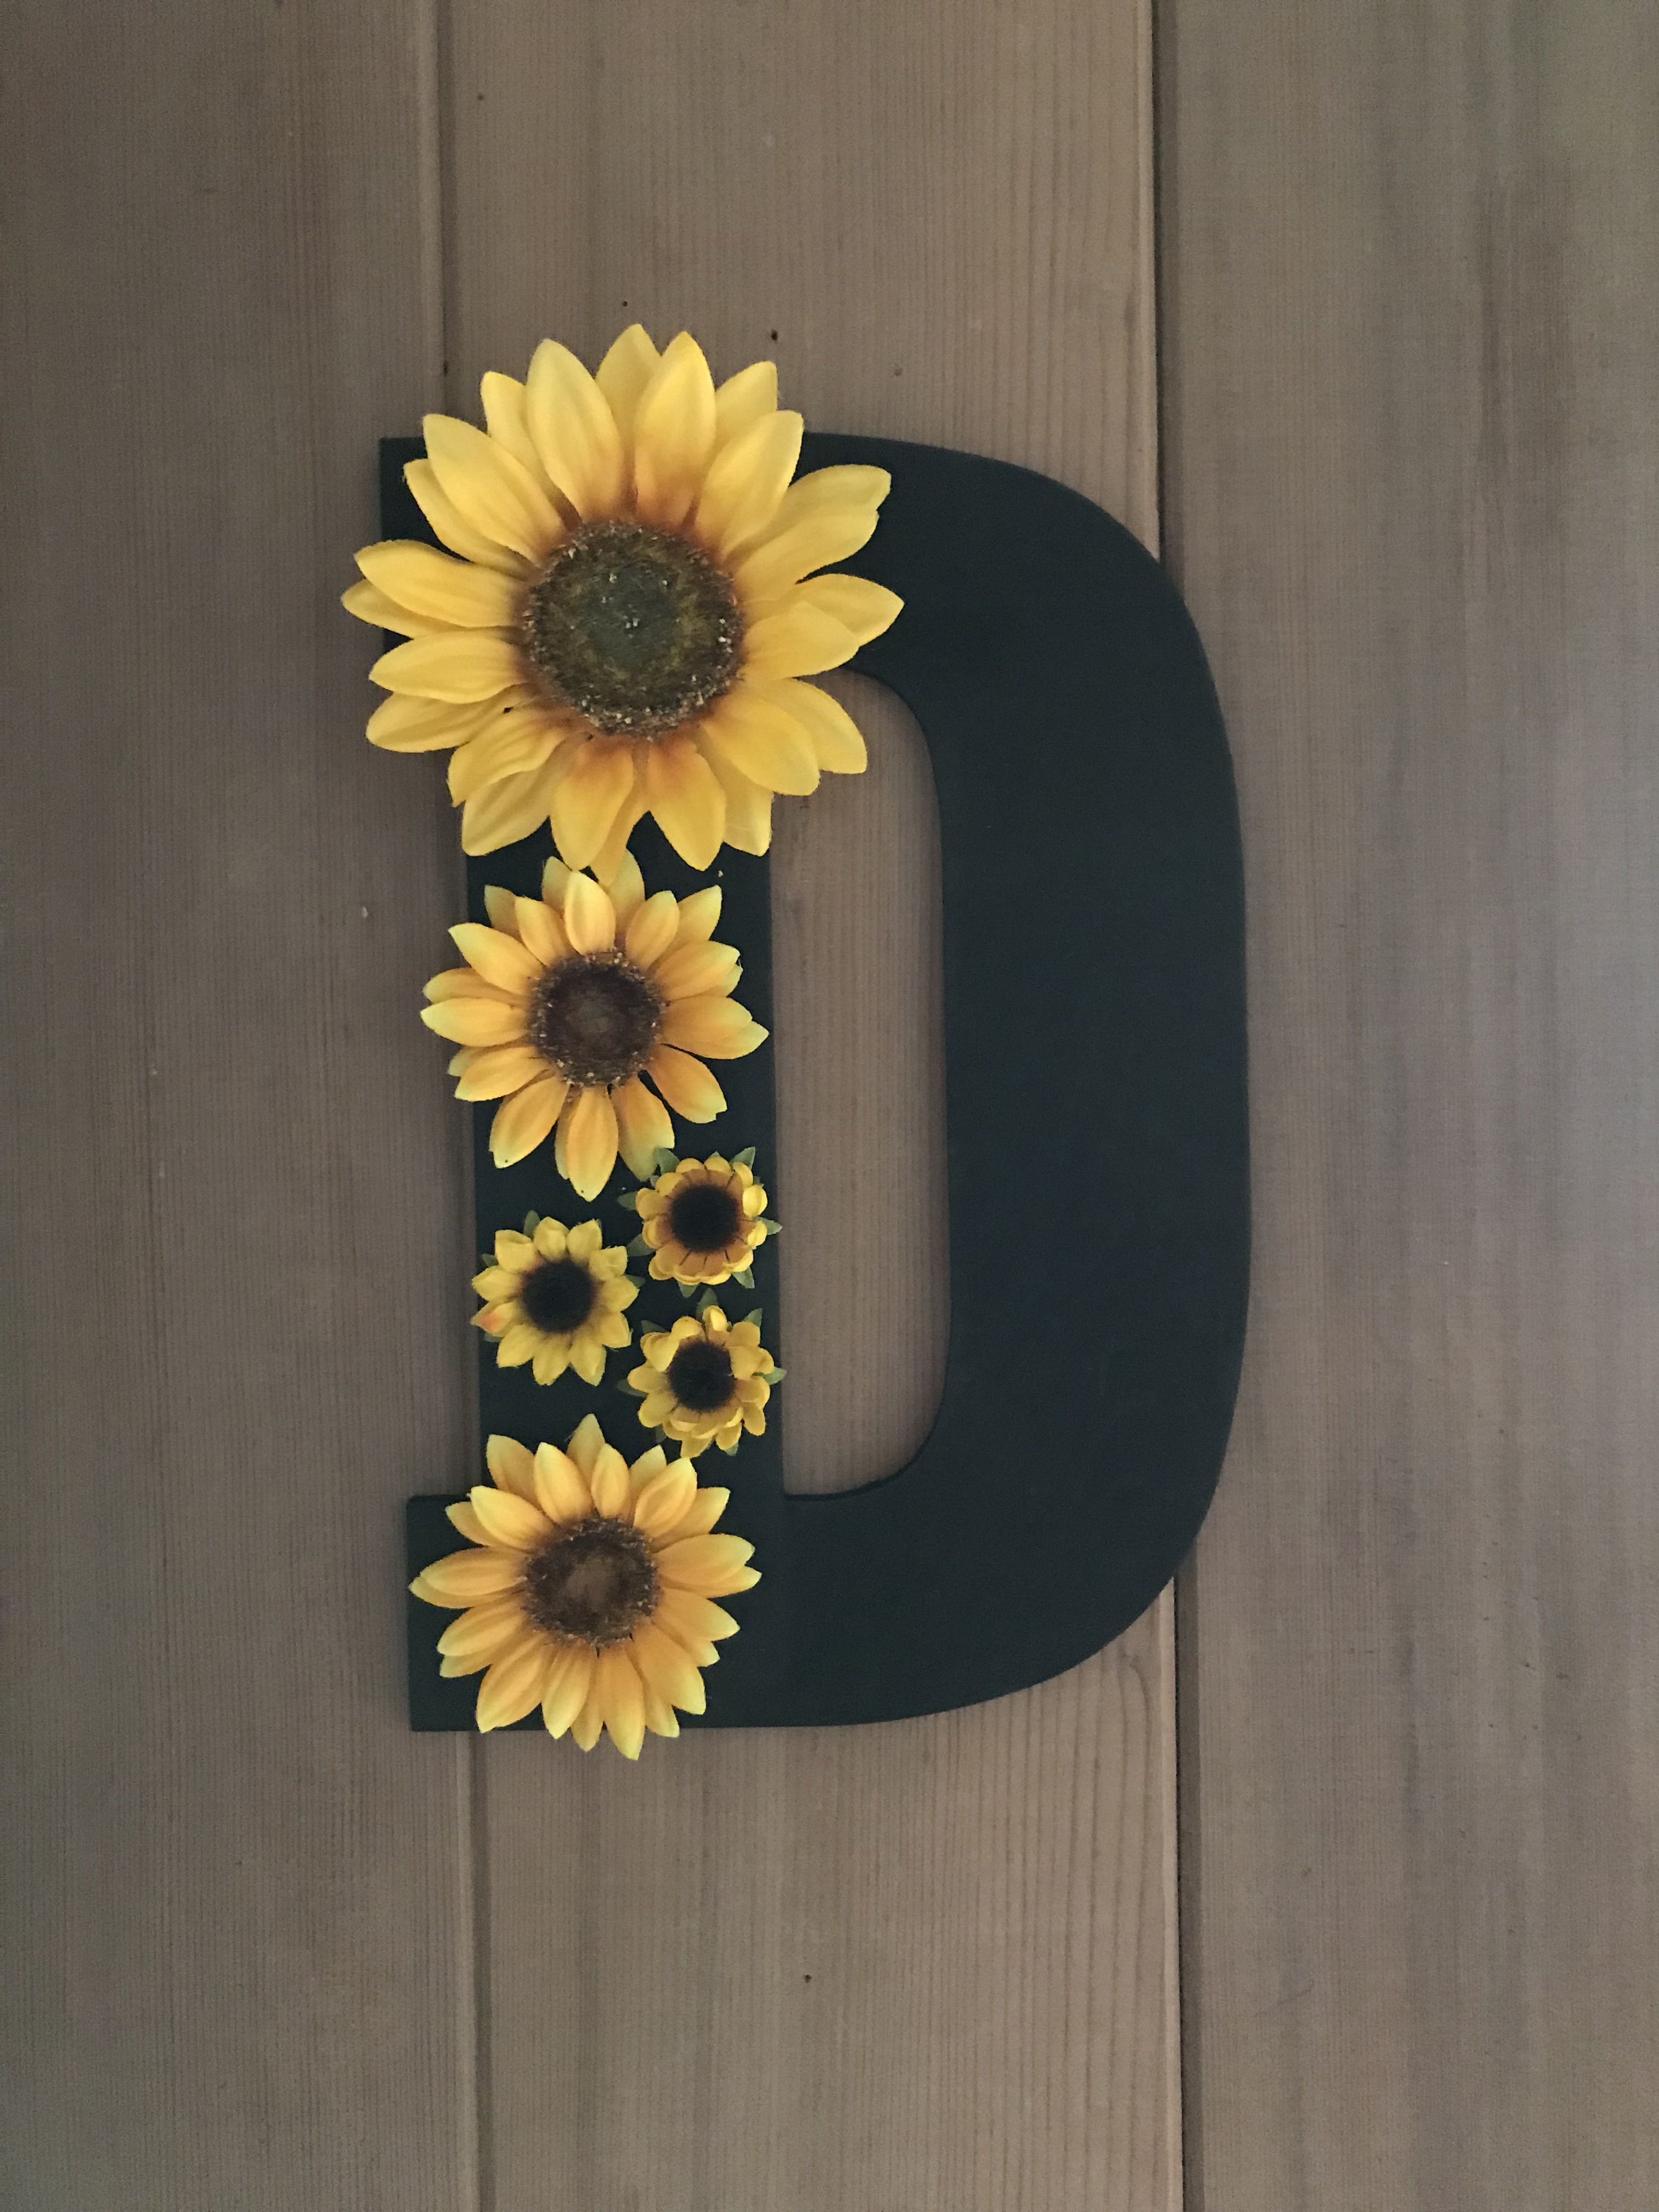 Wooden Letter With Sunflowers Sunflower Room Room Decor